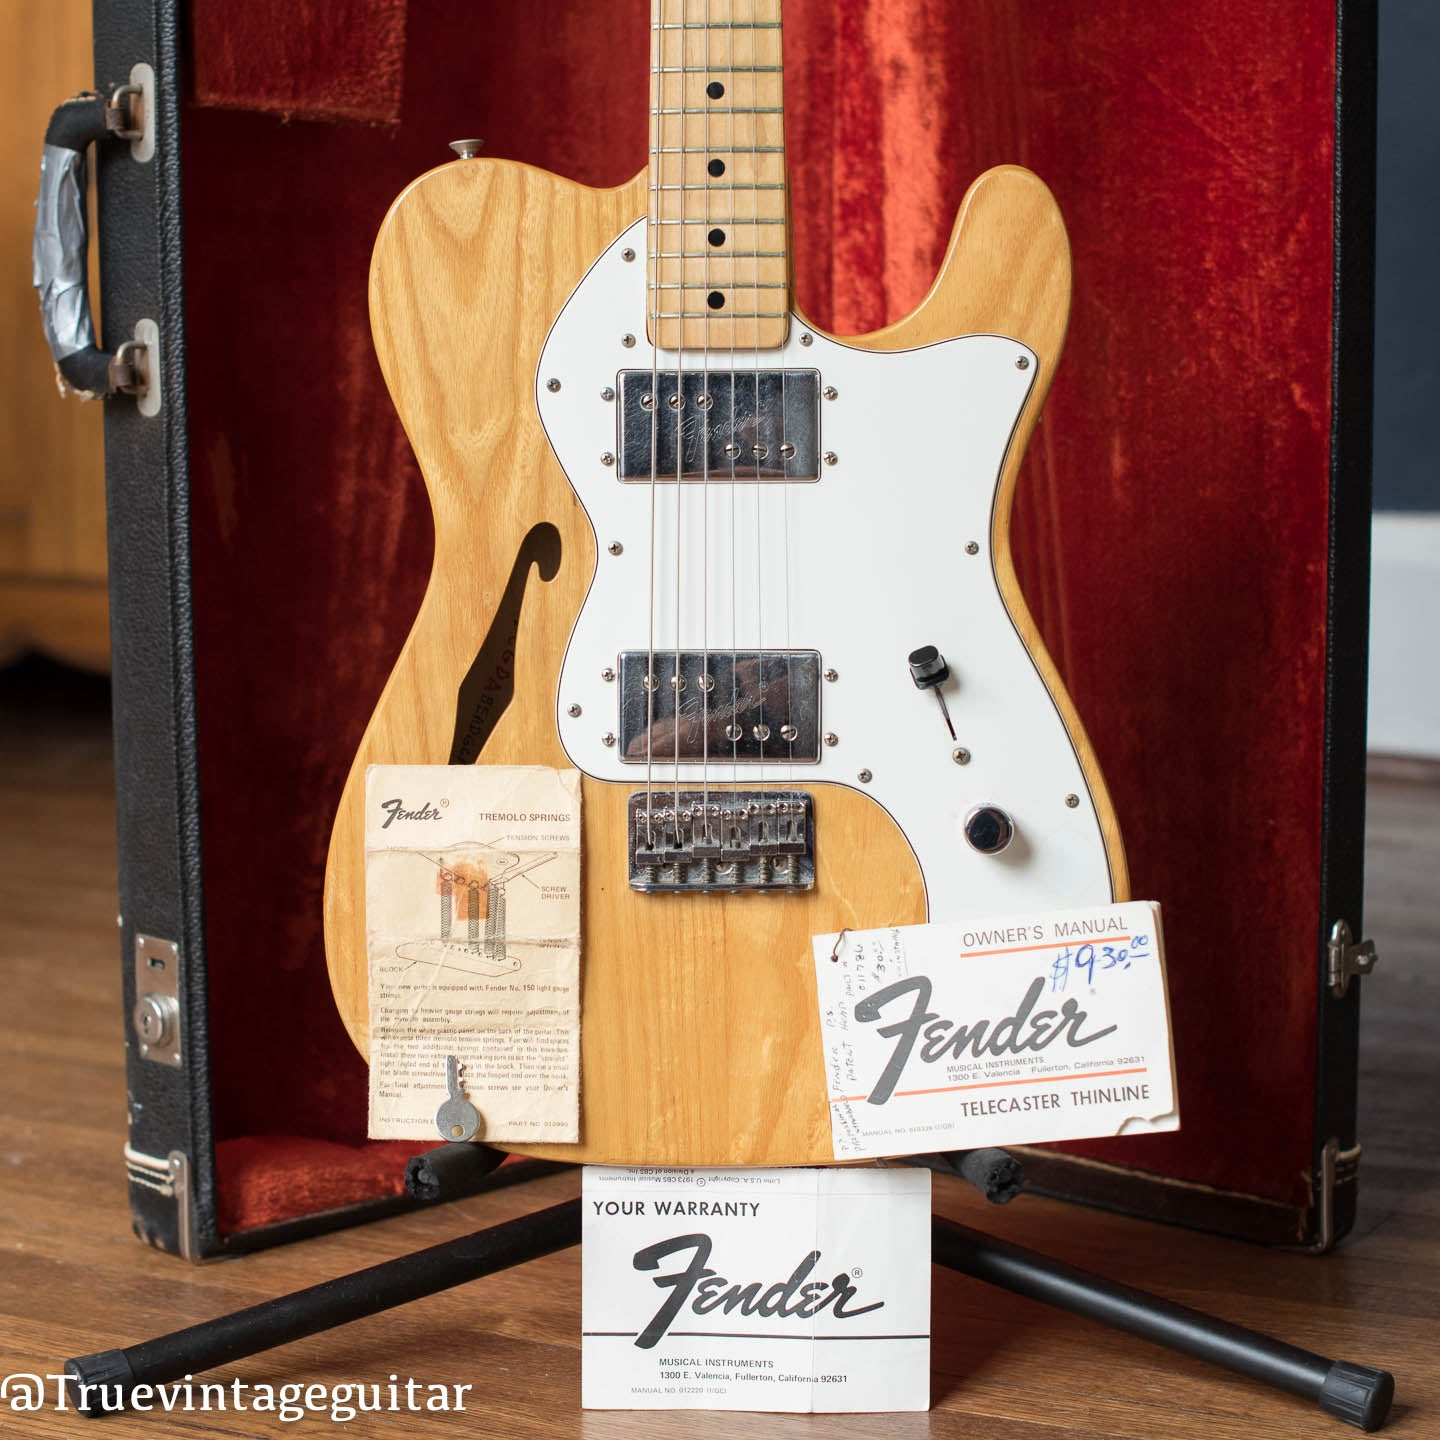 Fender Telecaster Thinline guitar 1974 hang tags